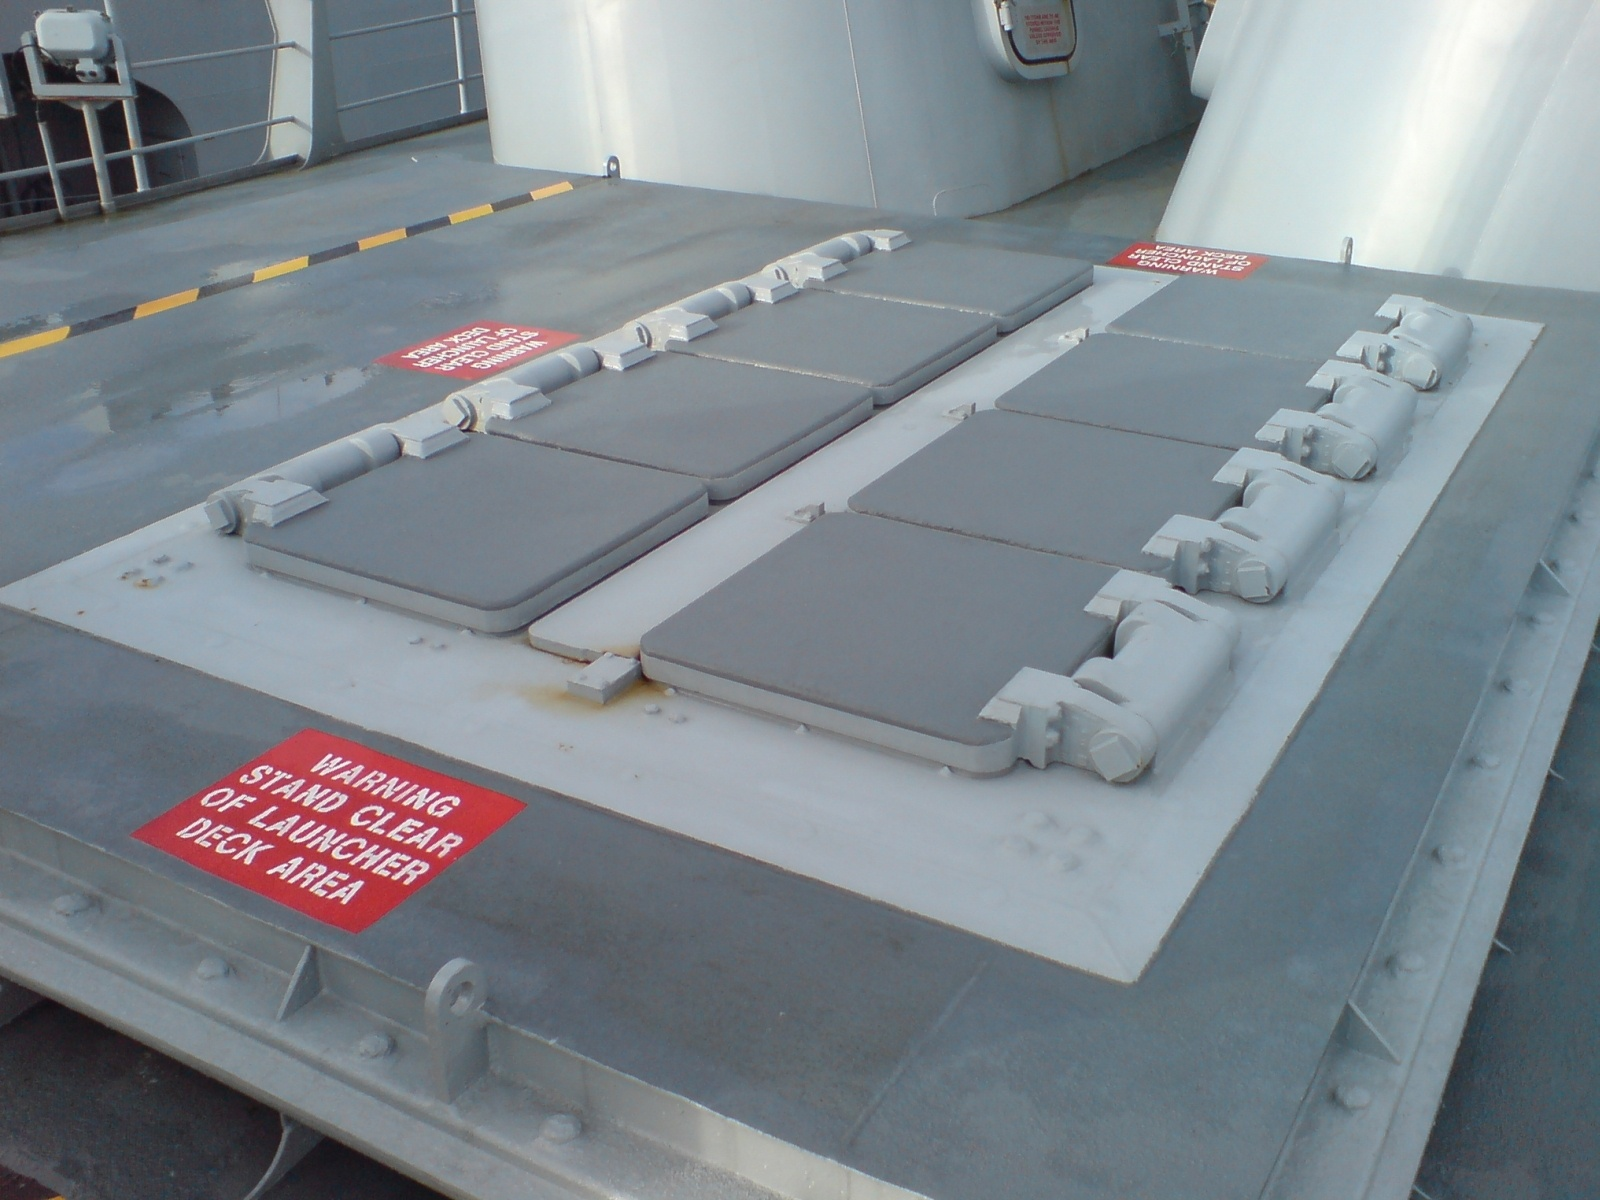 Each VLS module contains eight missileloaded canisters